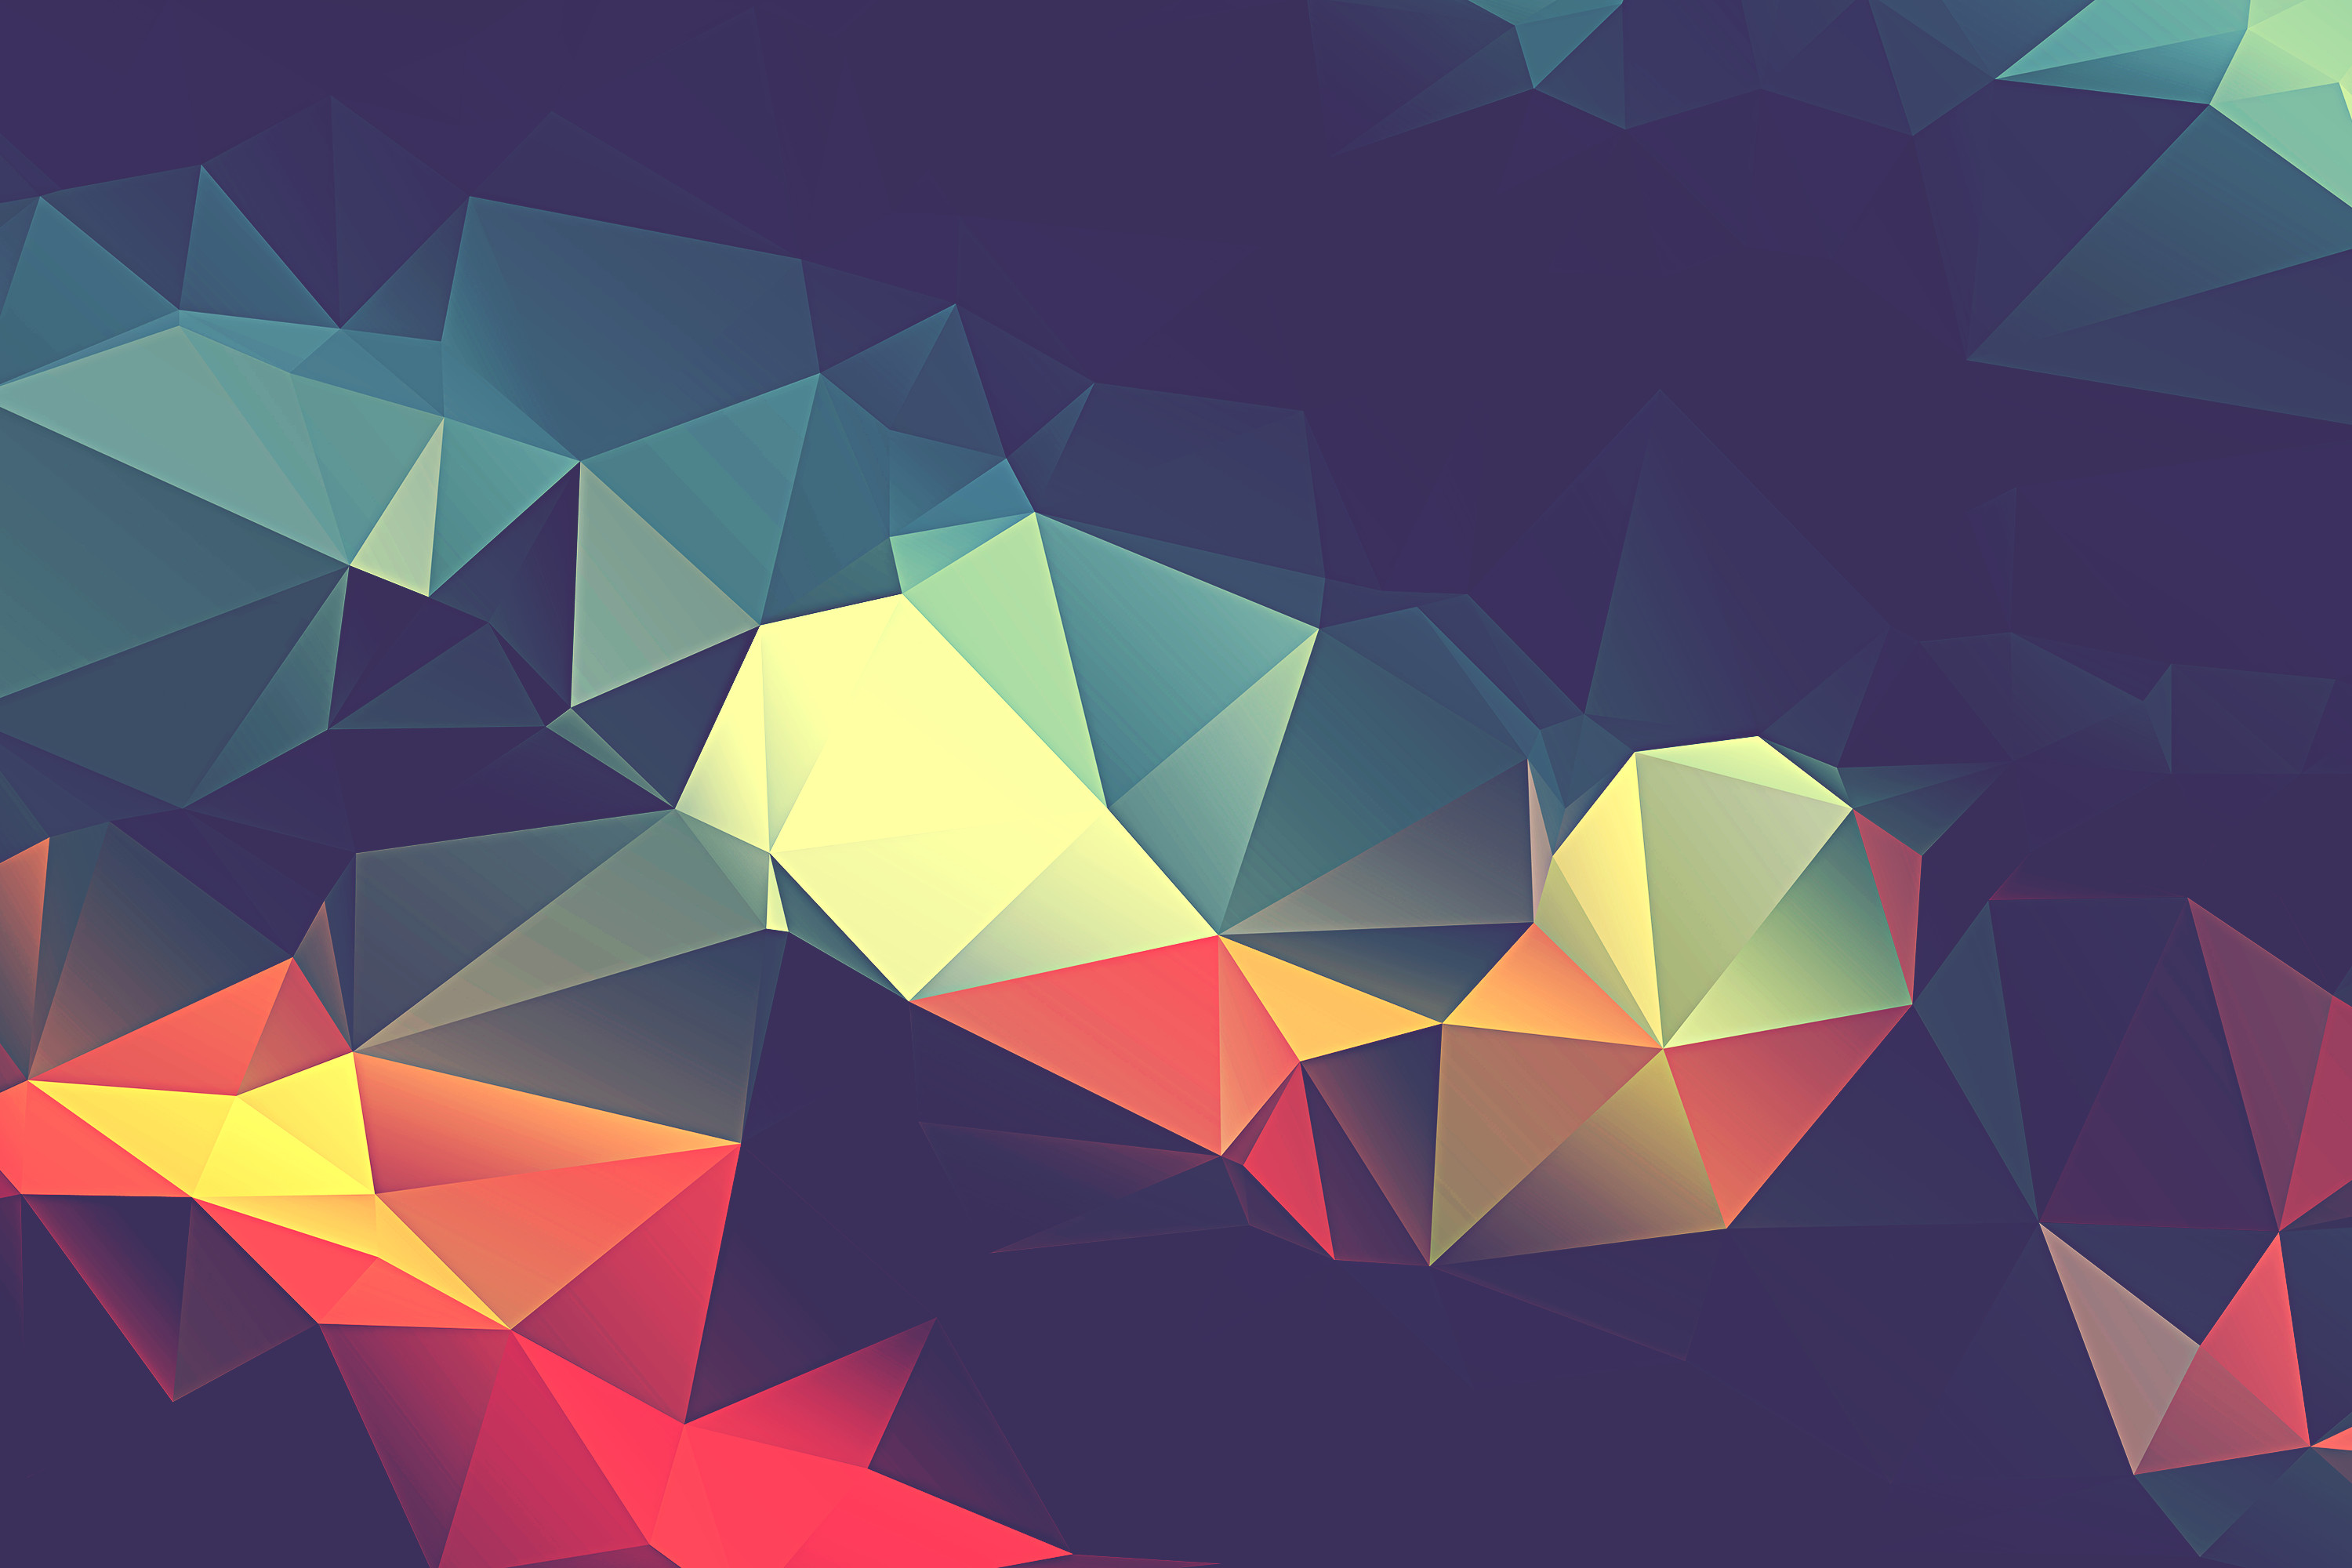 Android Wallpapers of the Week#13 (Polygon Backgrounds)